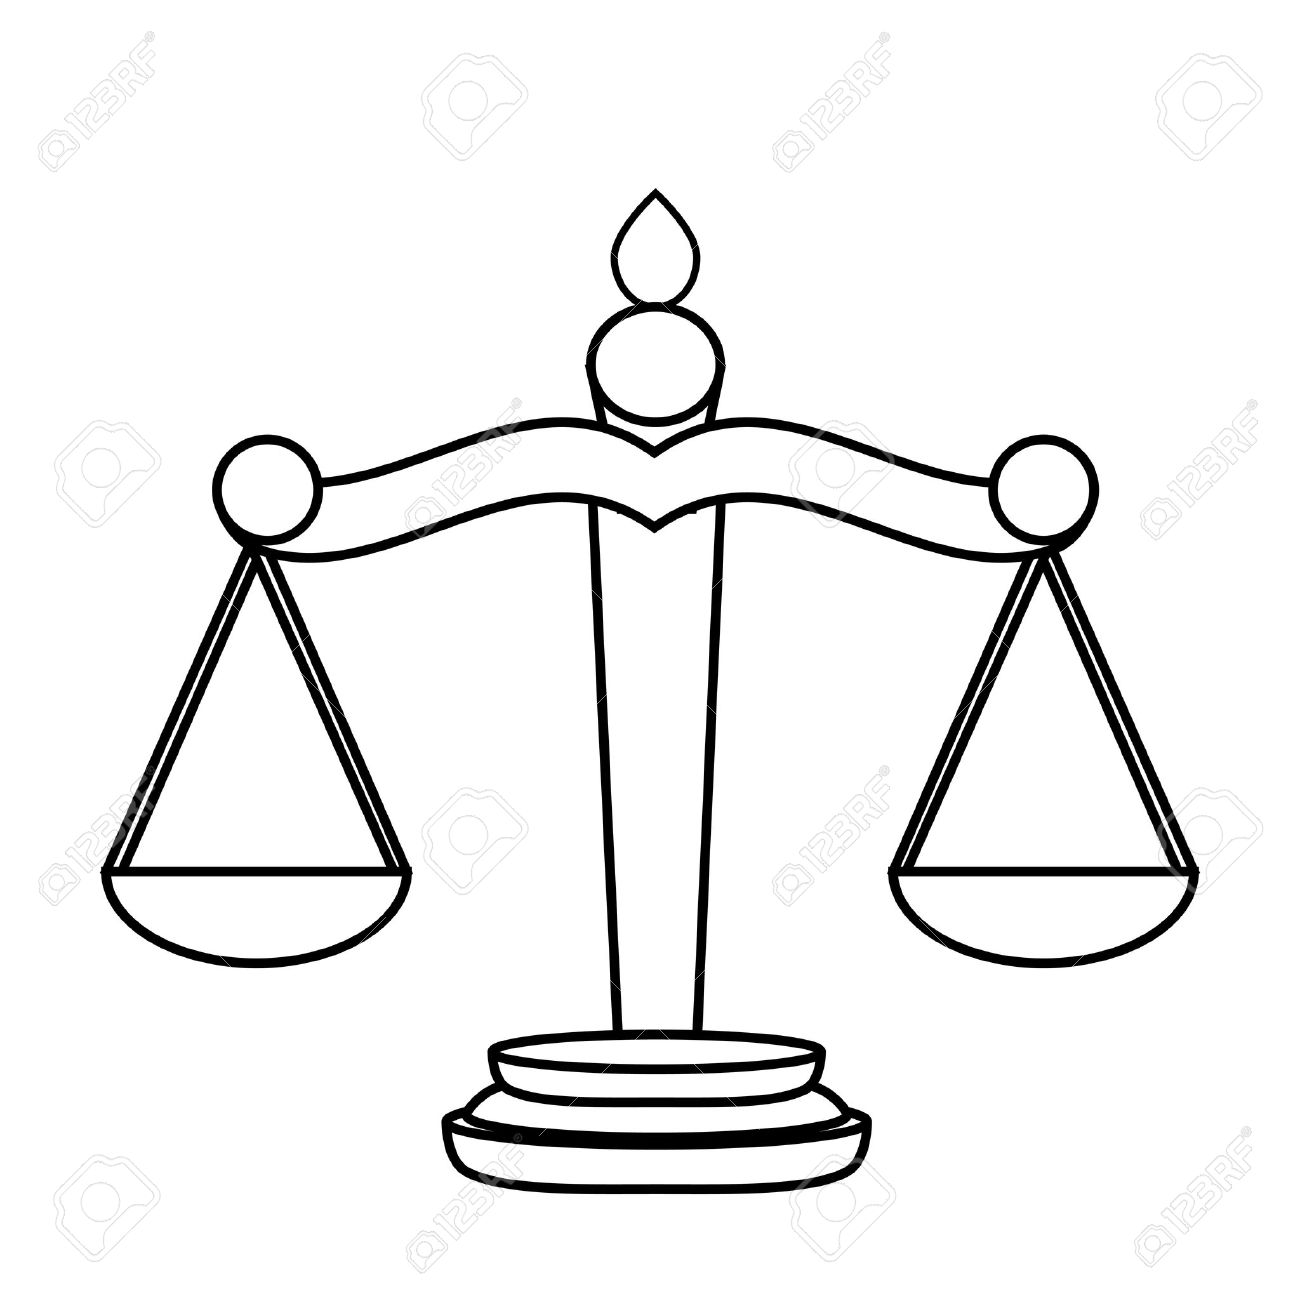 Scales of Justice Stock Vector - 16672151